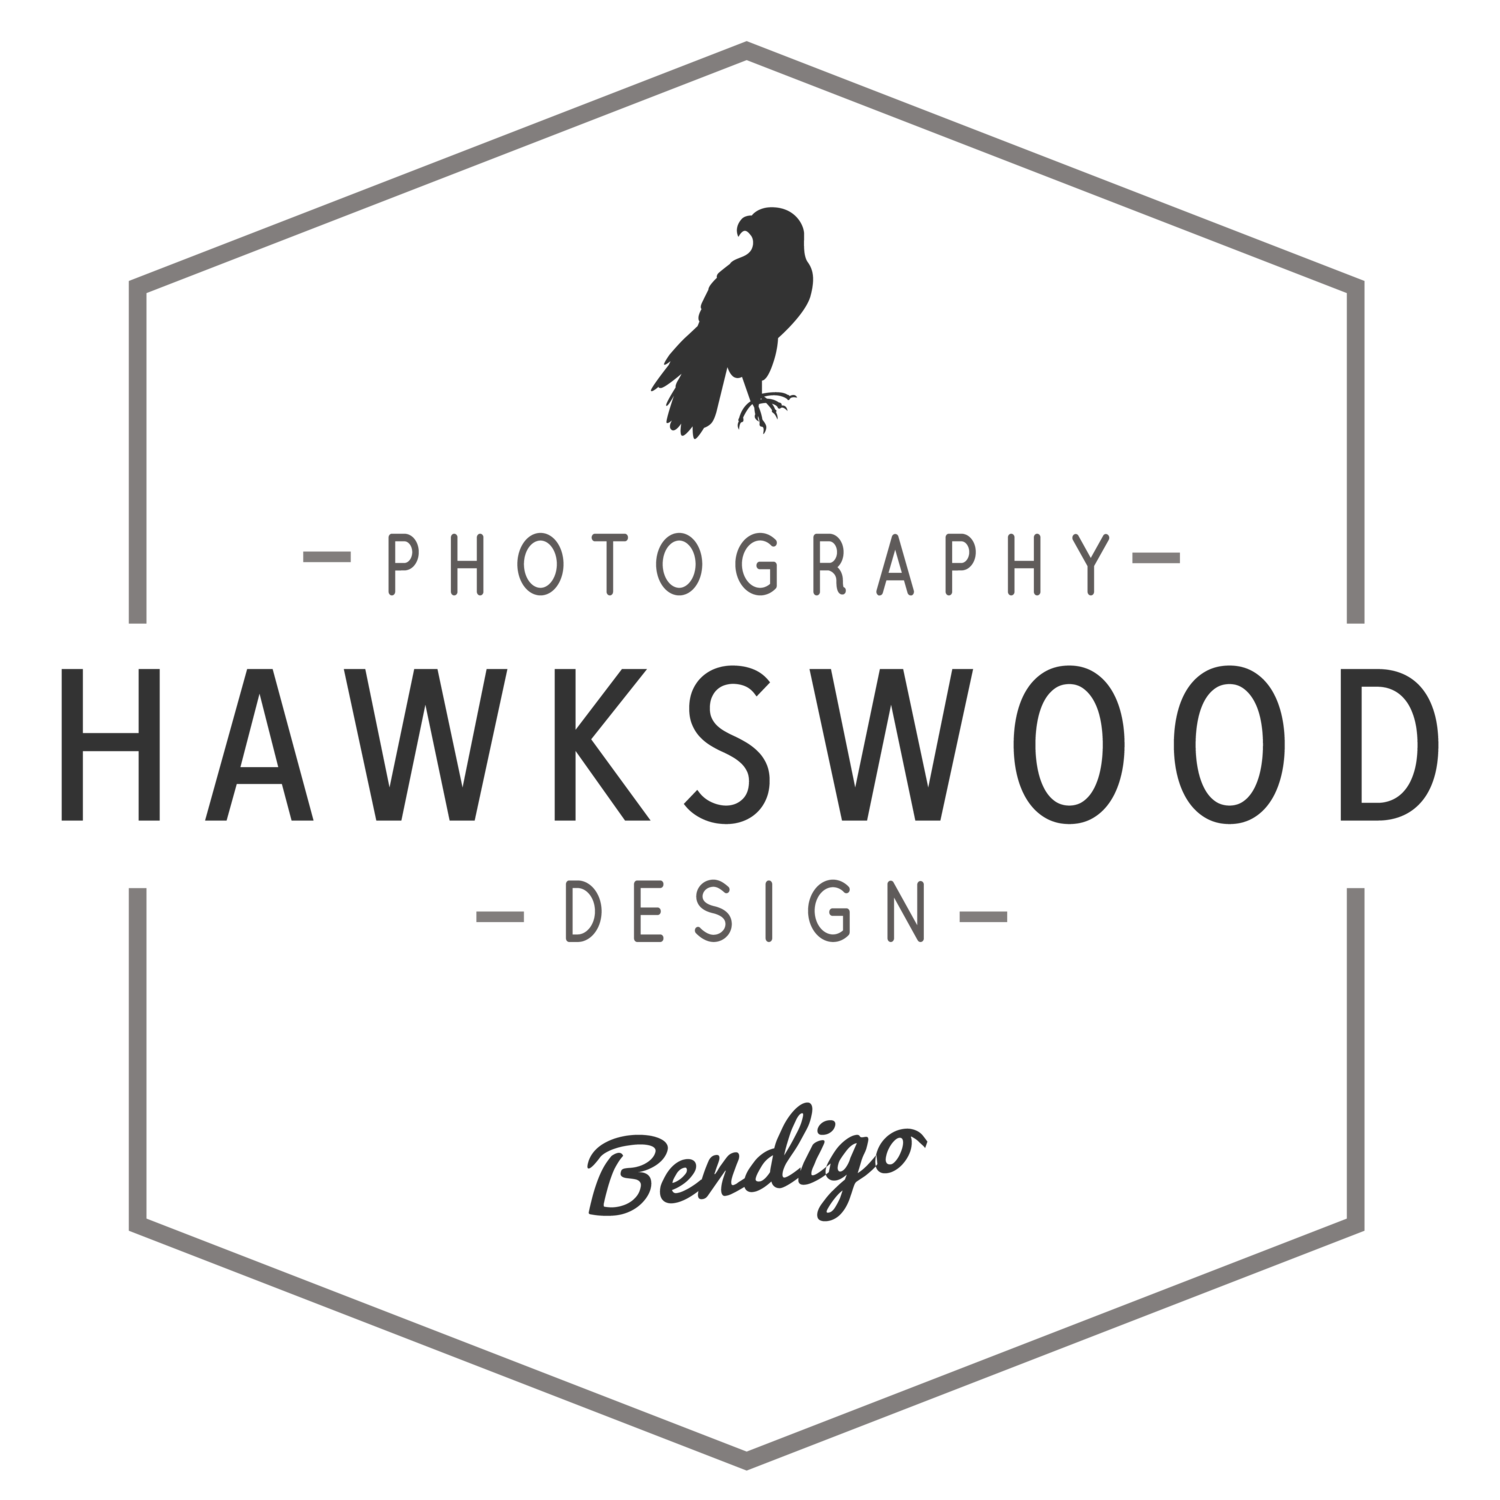 Hawkswood Photography & Design